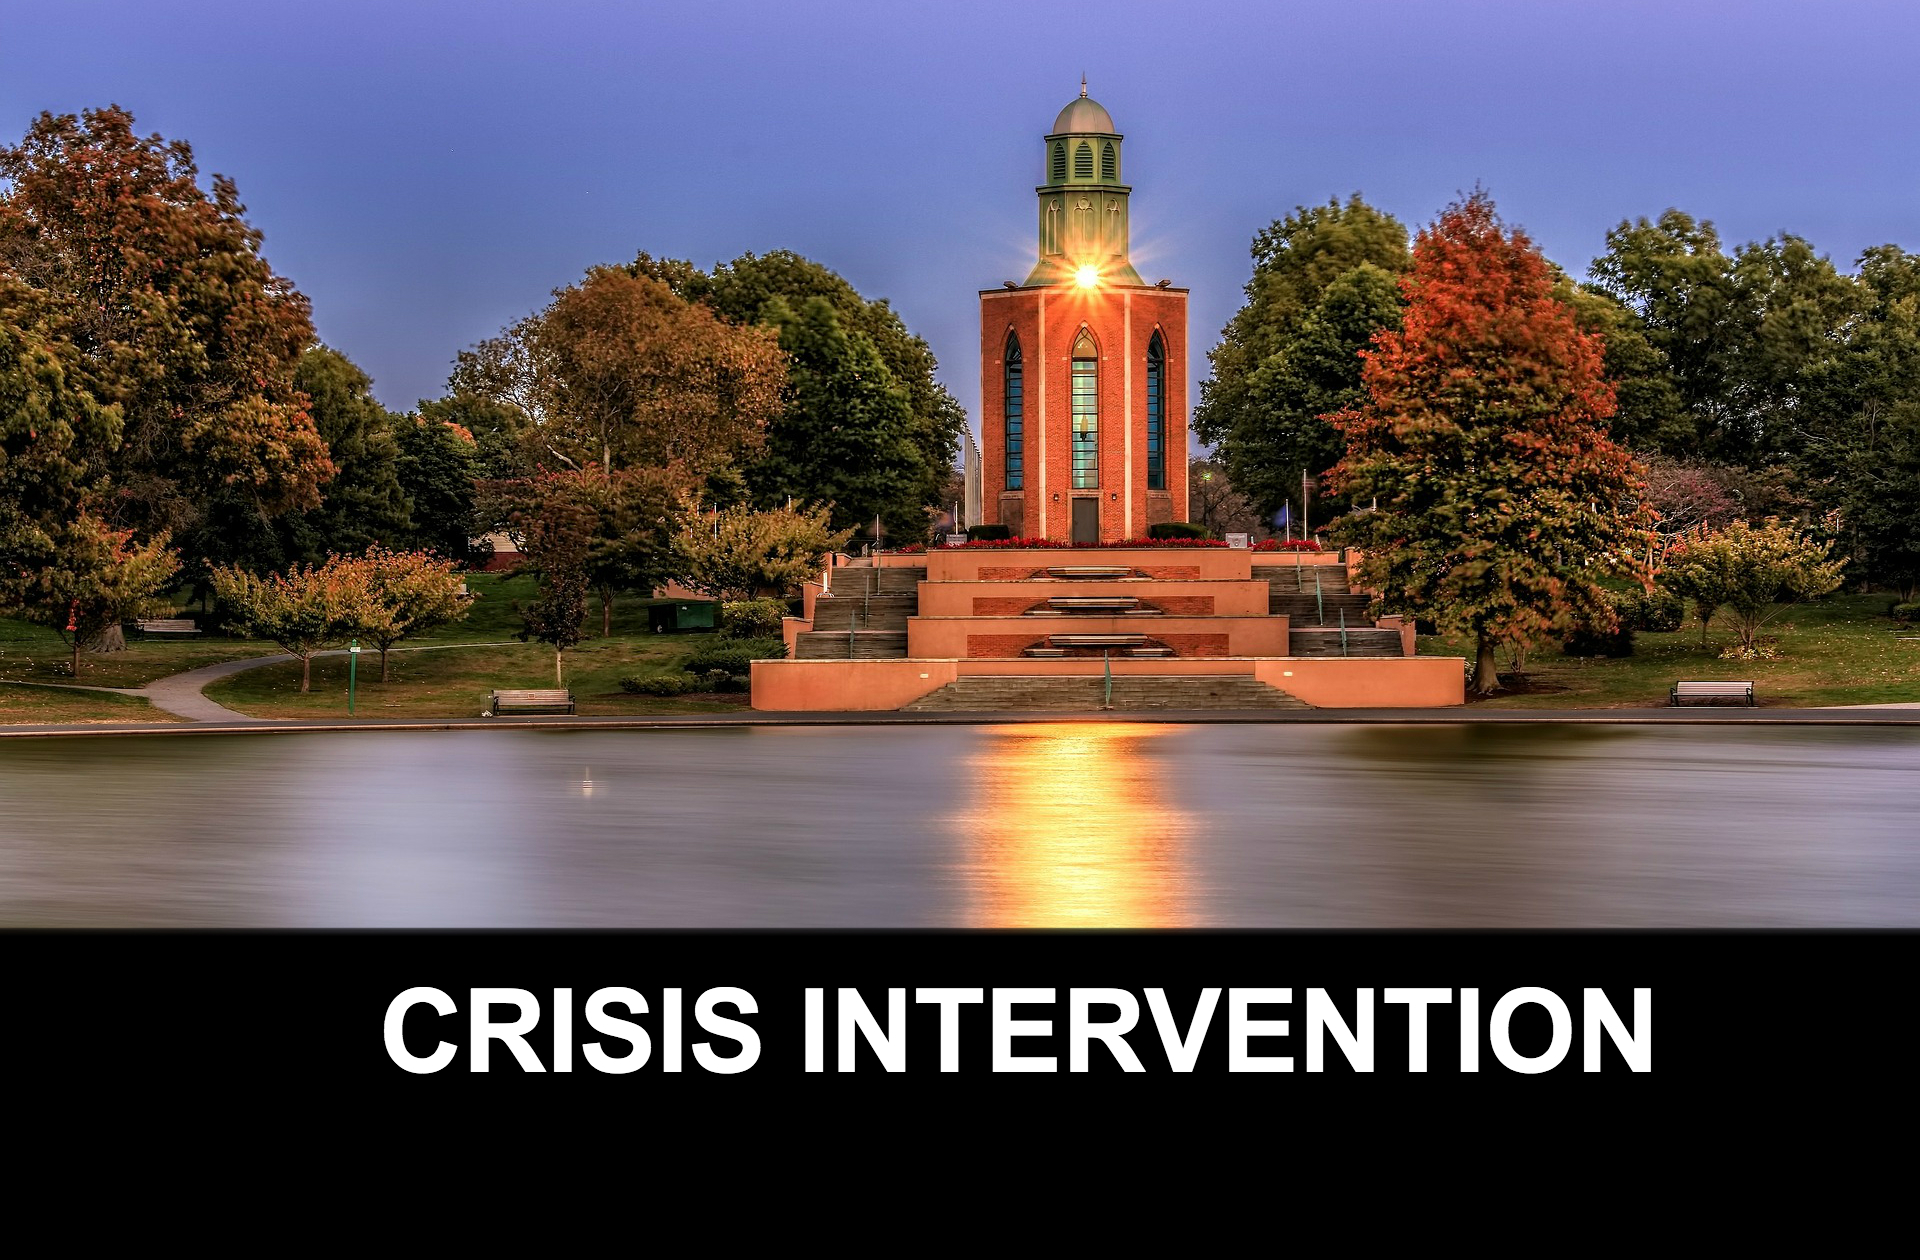 CRISIS INTERVENTION